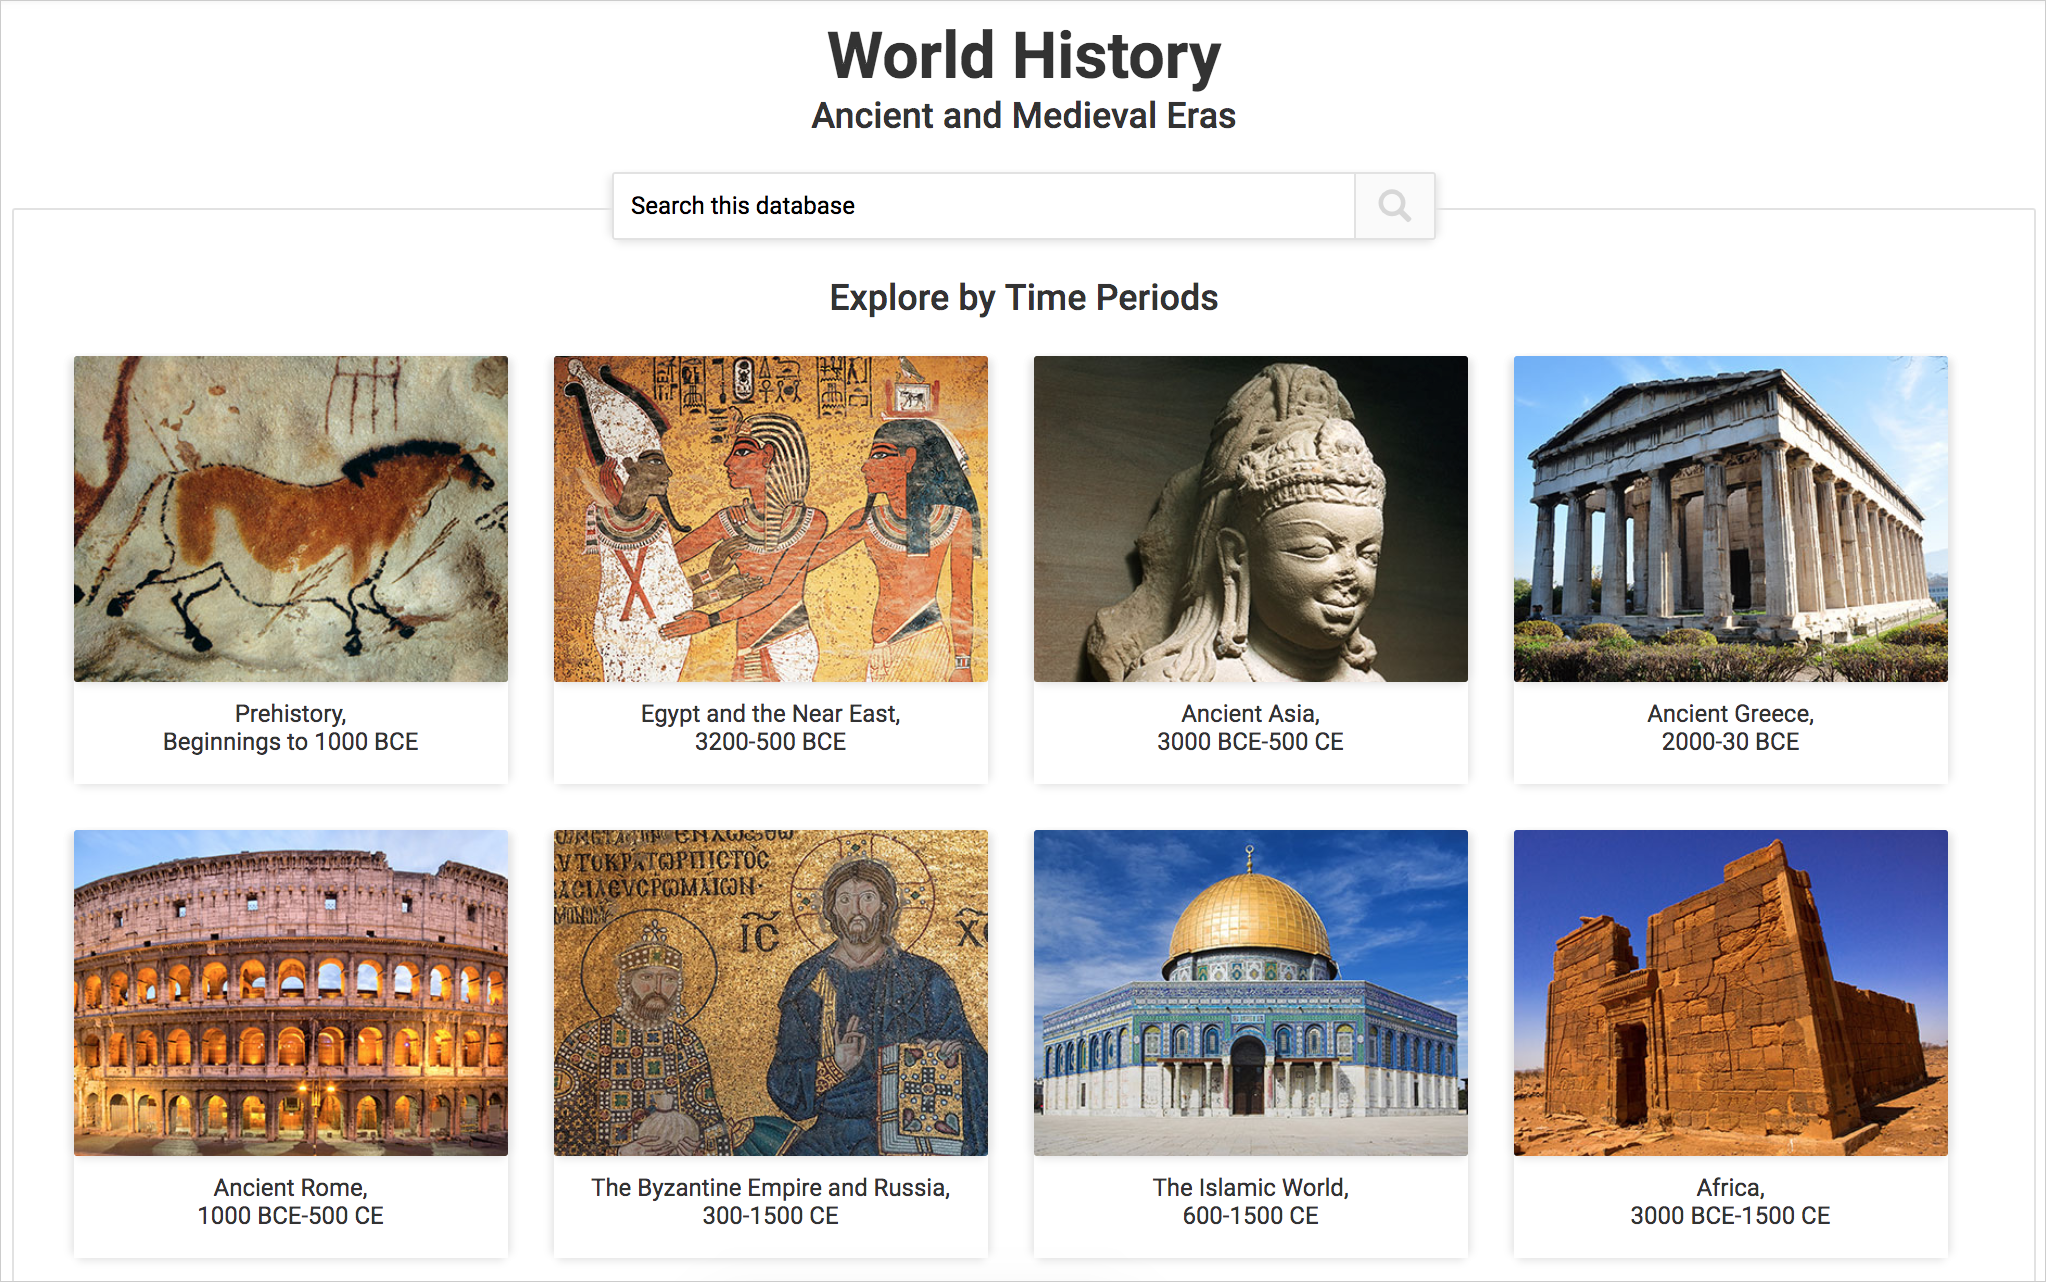 World History cover image